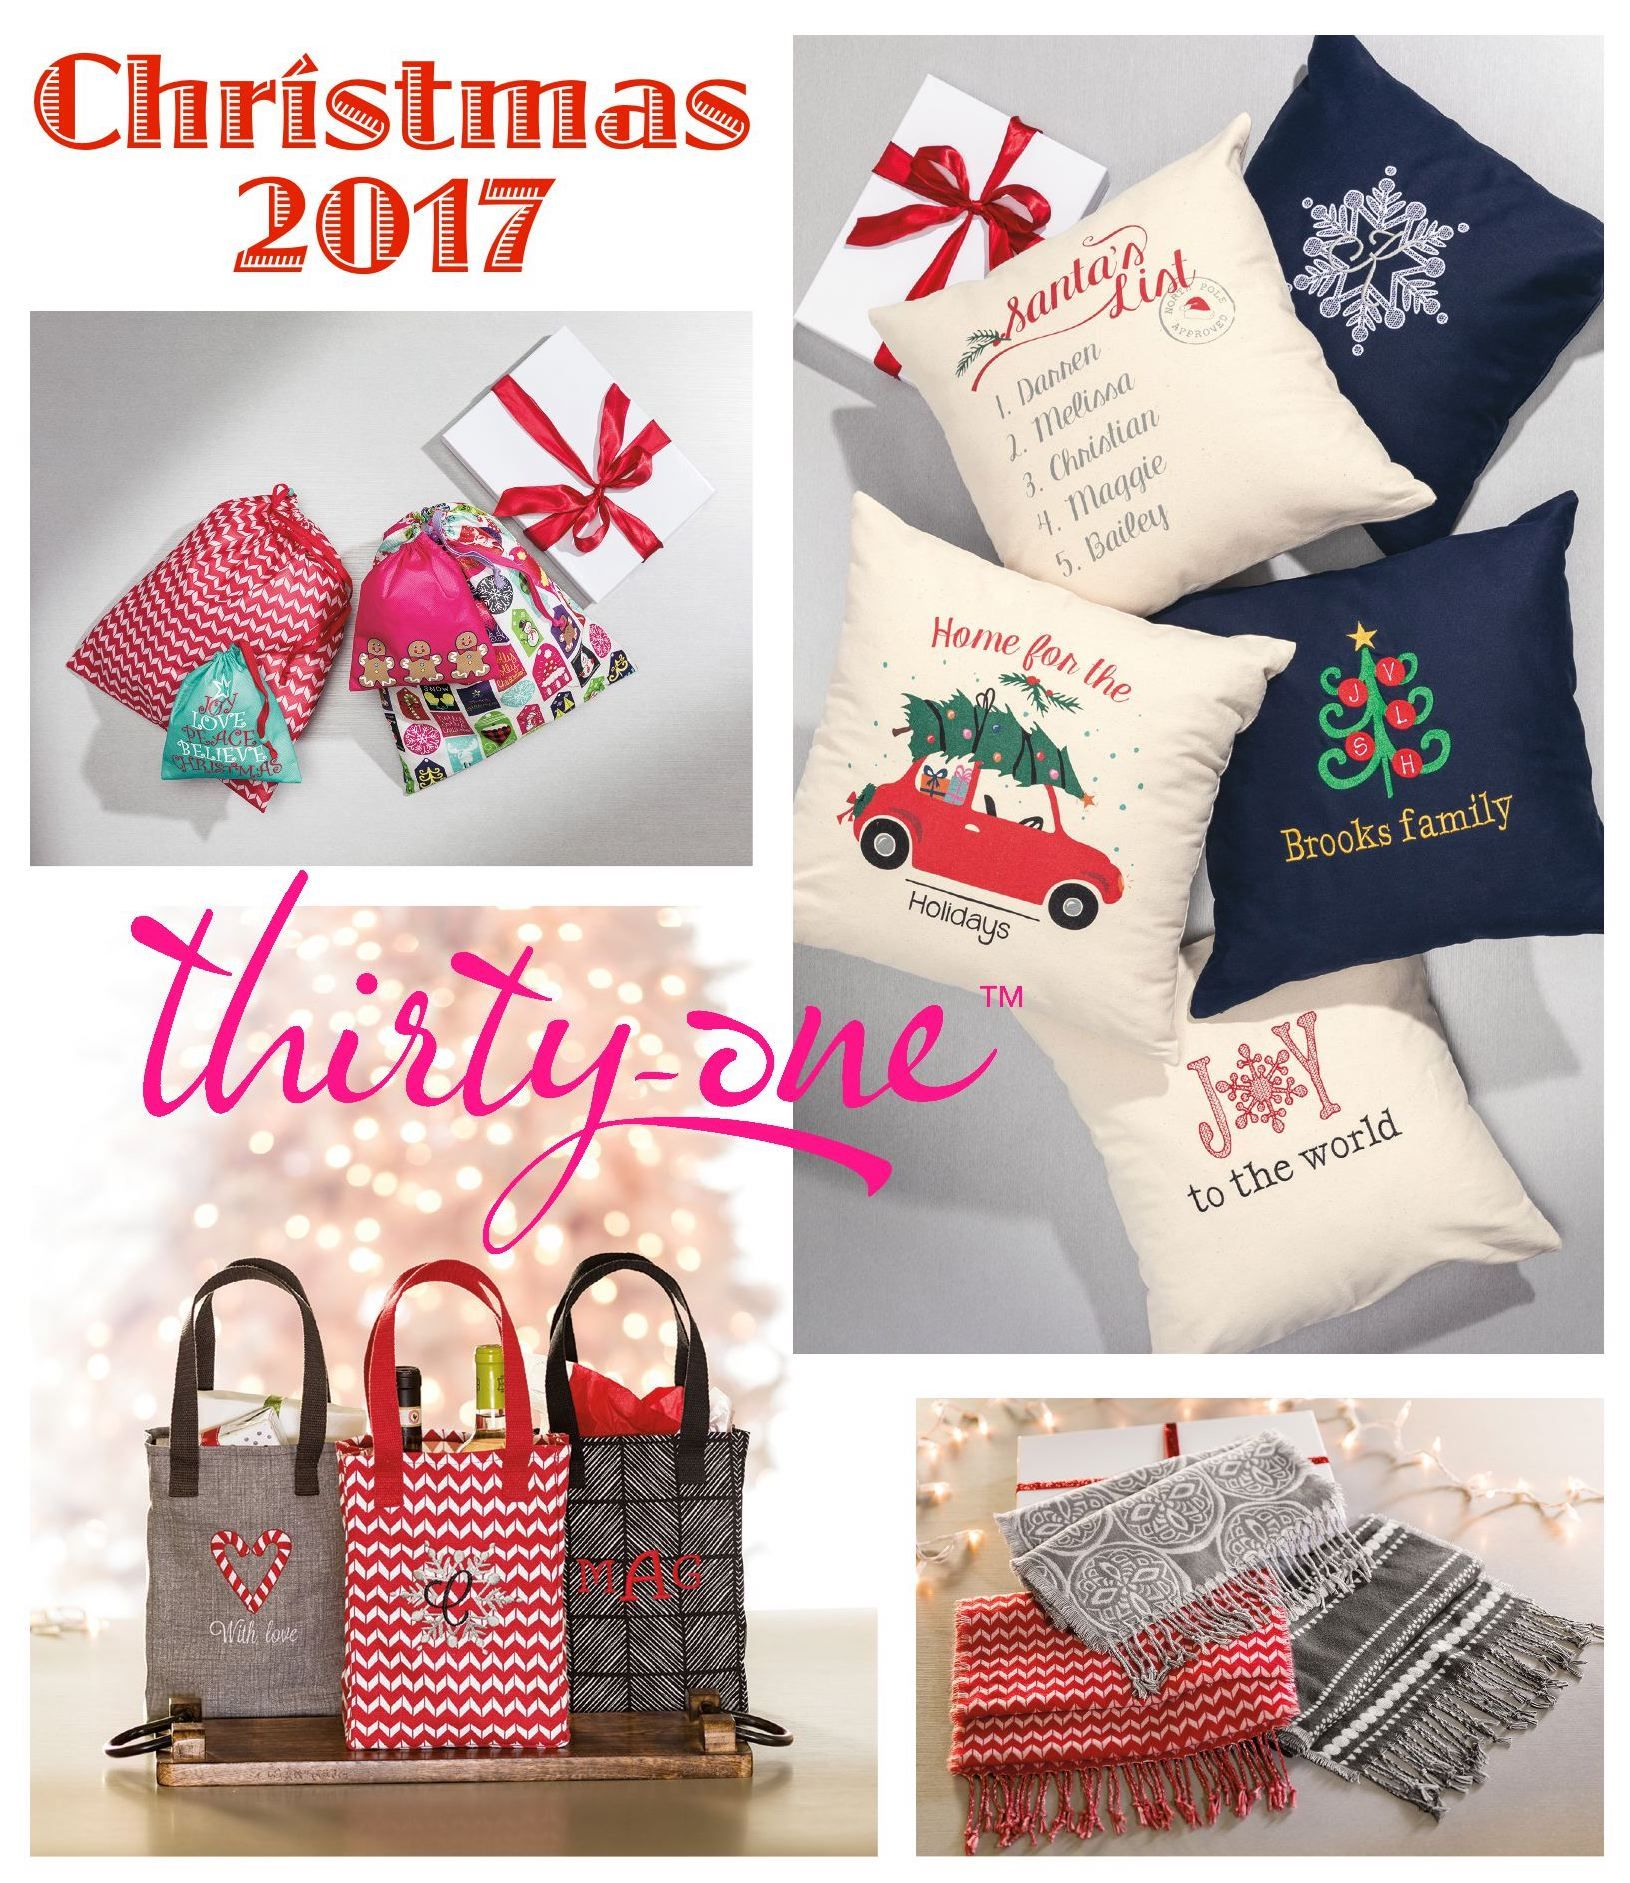 Thirty one november customer special 2014 - 2017 Thirty One Christmas Starts October 1st Medium Utility Tote In Hello